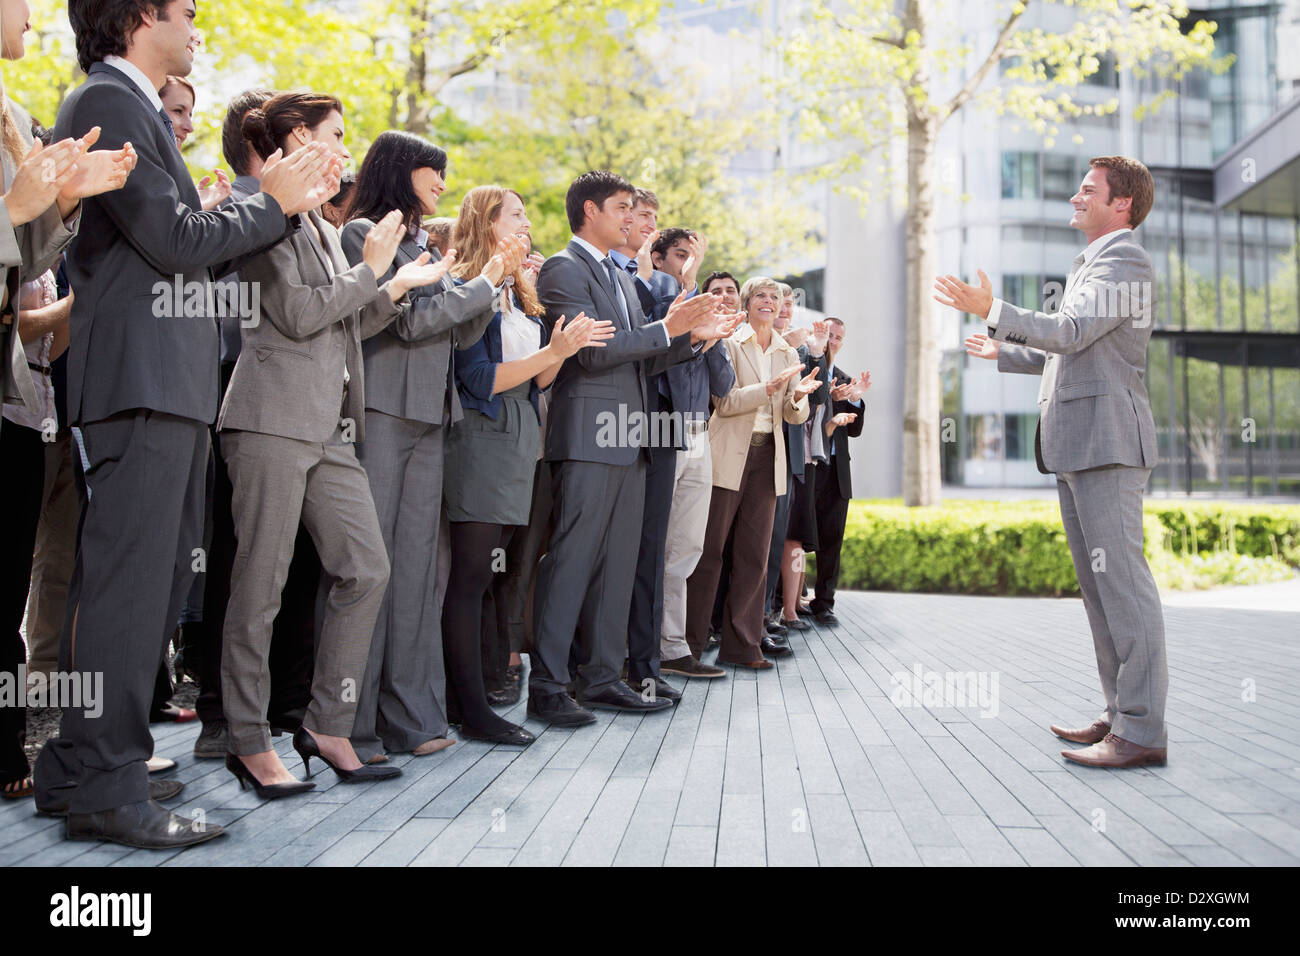 Crowd of business people cheering for businessman - Stock Image